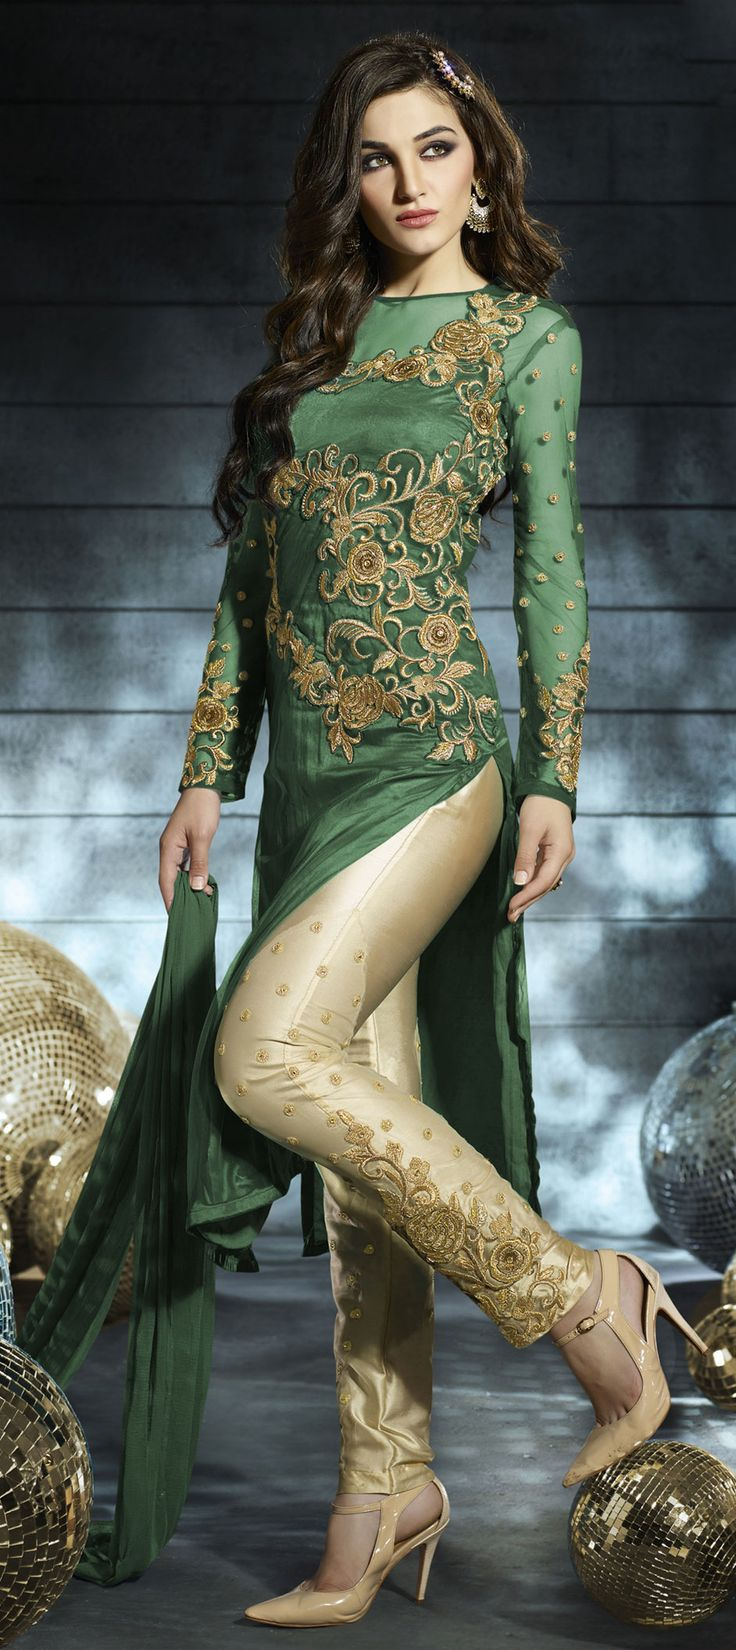 456249: Green color family semi-stiched Party Wear Salwar Kameez .